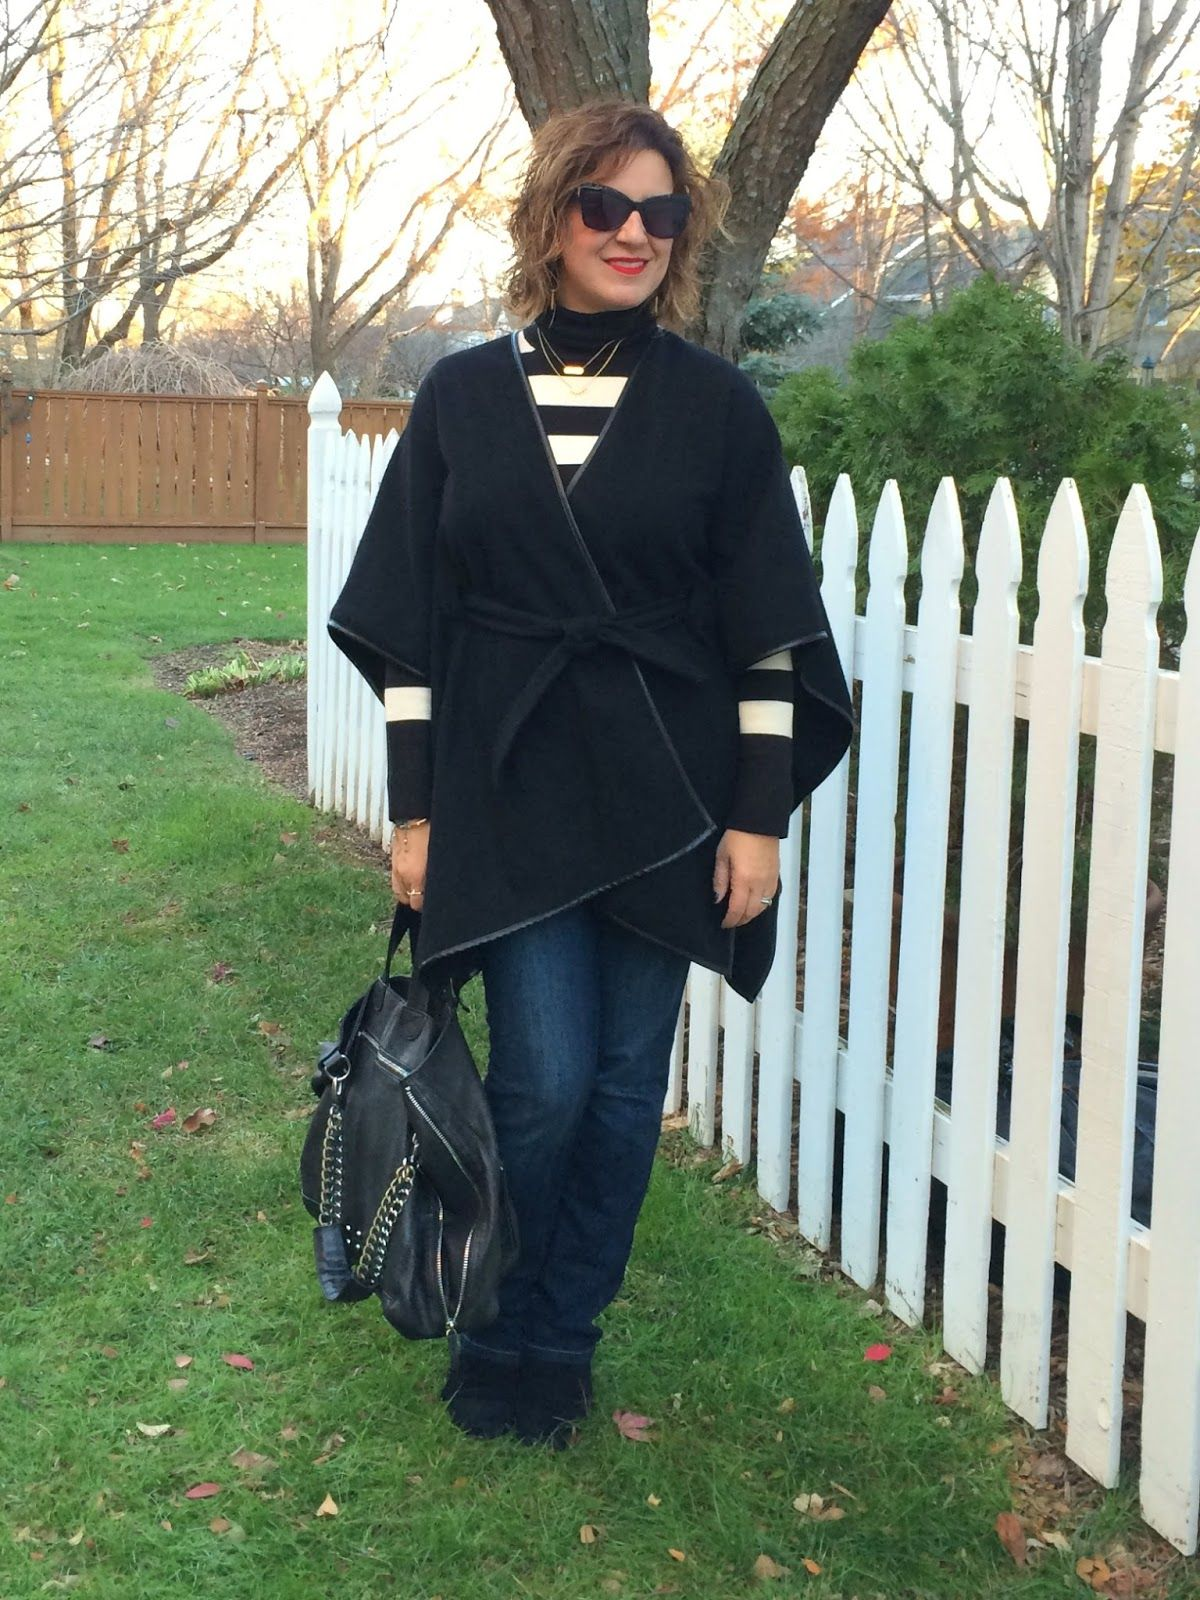 Ann Taylor Cape, French Connection T-Neck, Joe's Jeans, Rockport Boots http://bit.ly/1XSjGq2